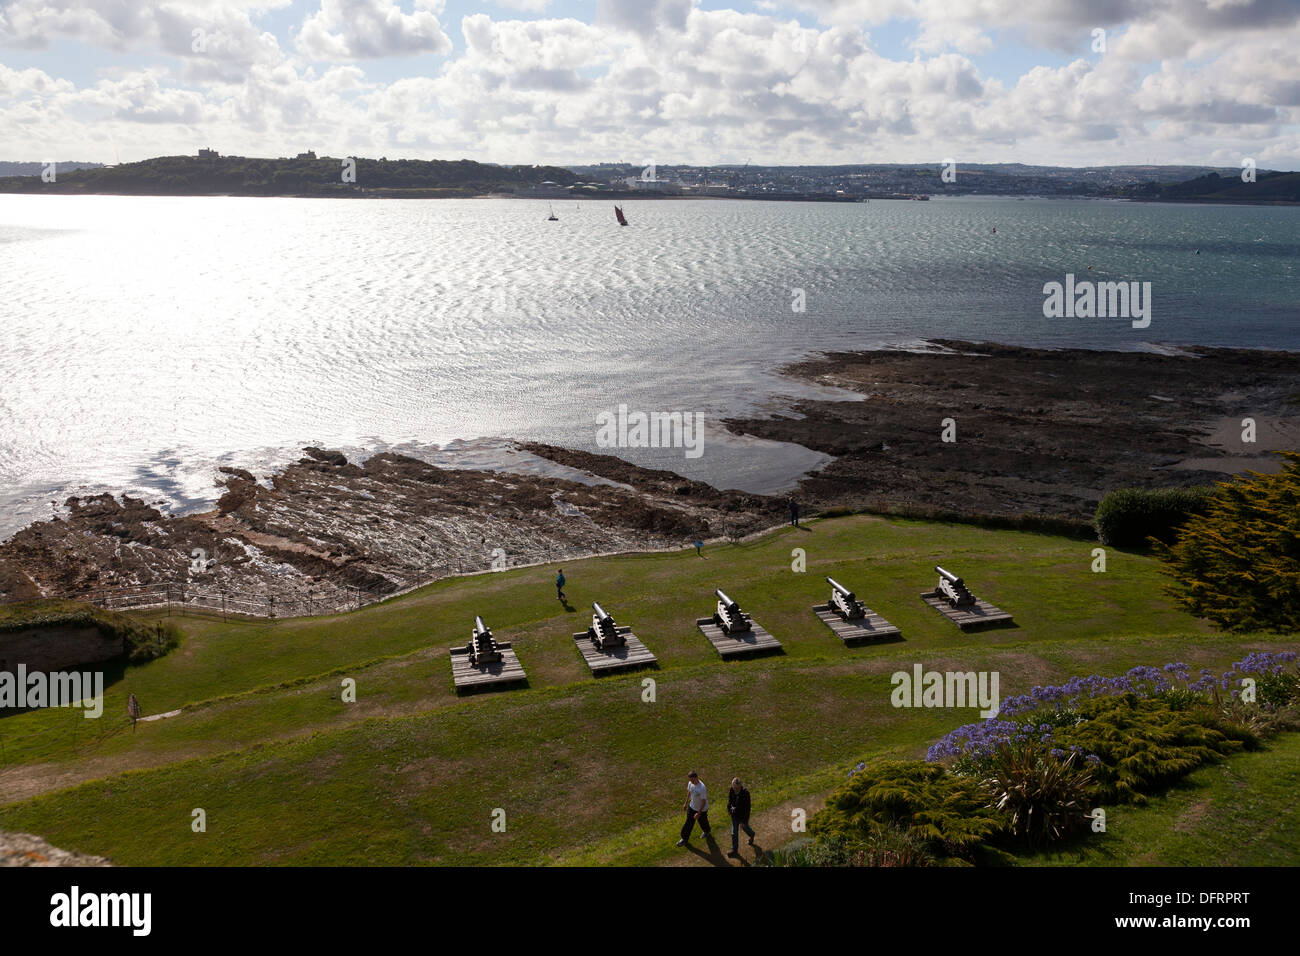 The cannons of St Mawes Castle facing across Carrick Roads,St Mawes, Cornwall - Stock Image